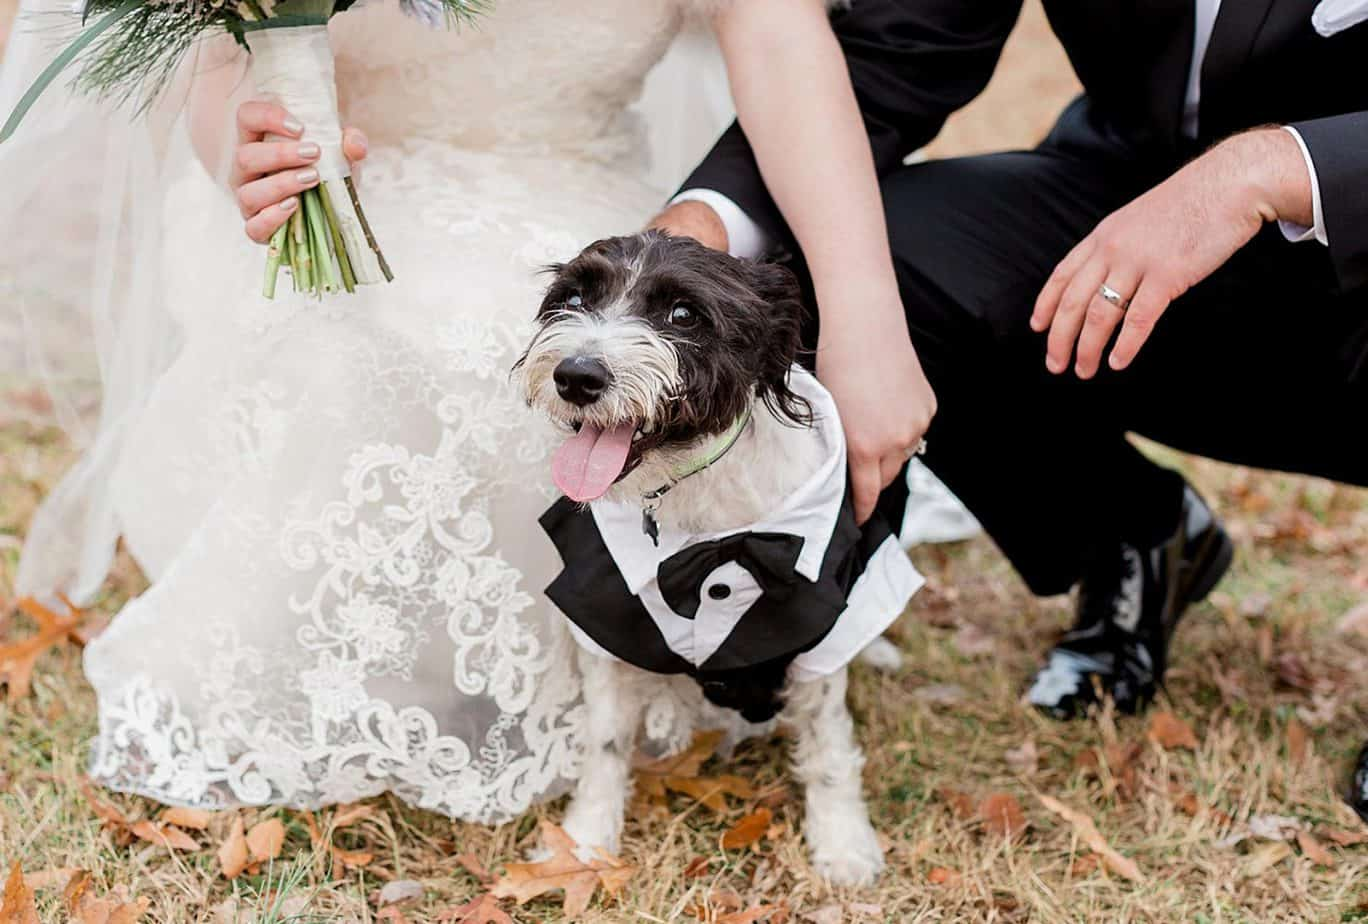 Bride and groom pose with dog in a tuxedo for a dog-friendly wedding.